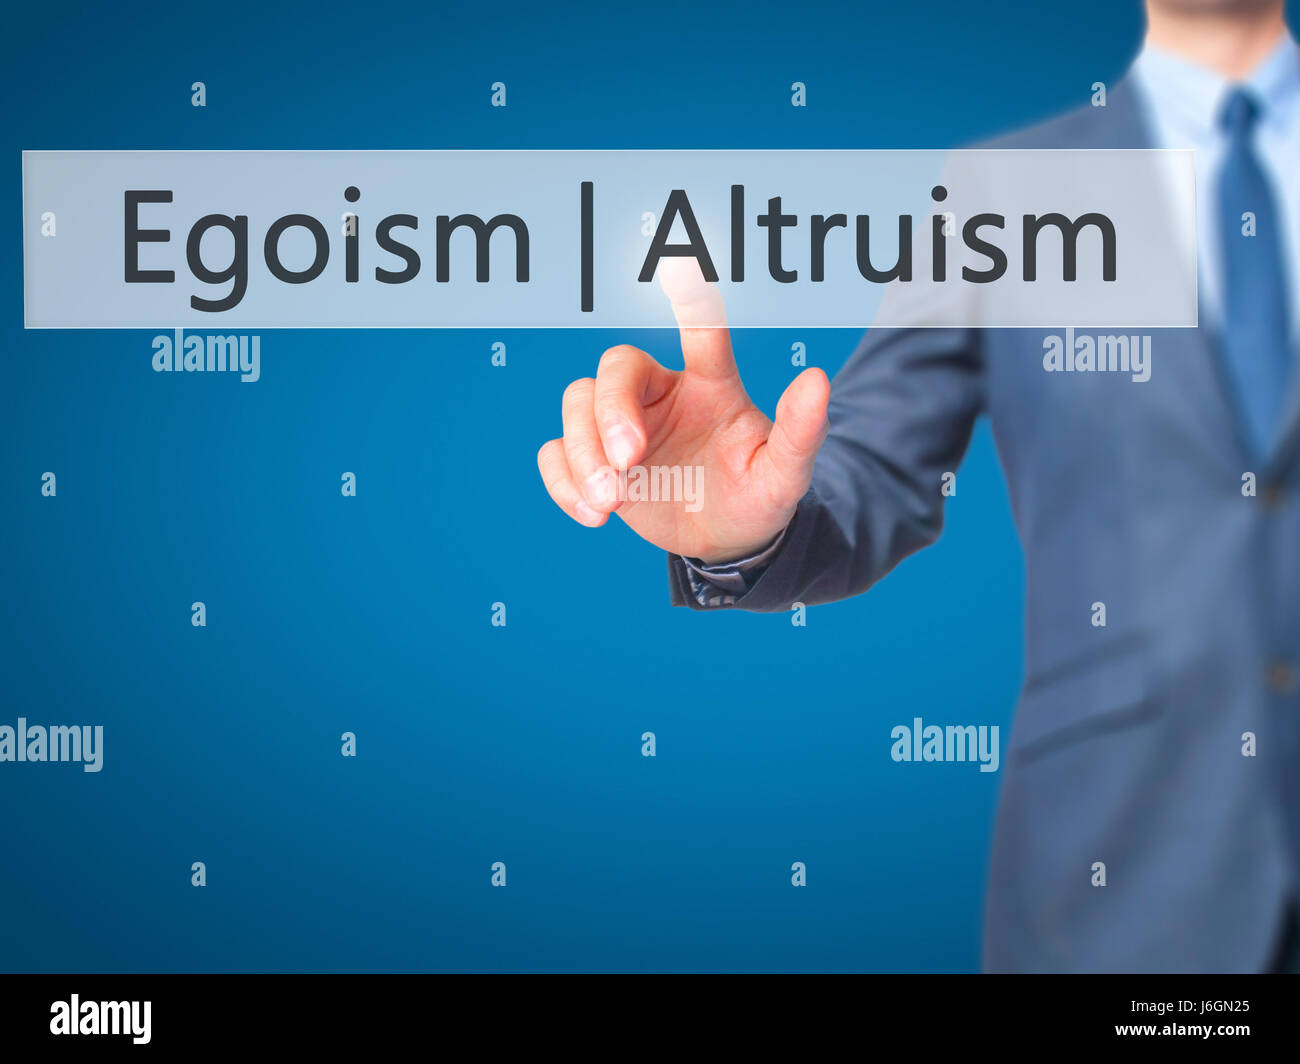 egoism altruism Egoism, altruism, and our cooperative social order/3 in each category failure to give priority to the highest-ranking altruistic or self.